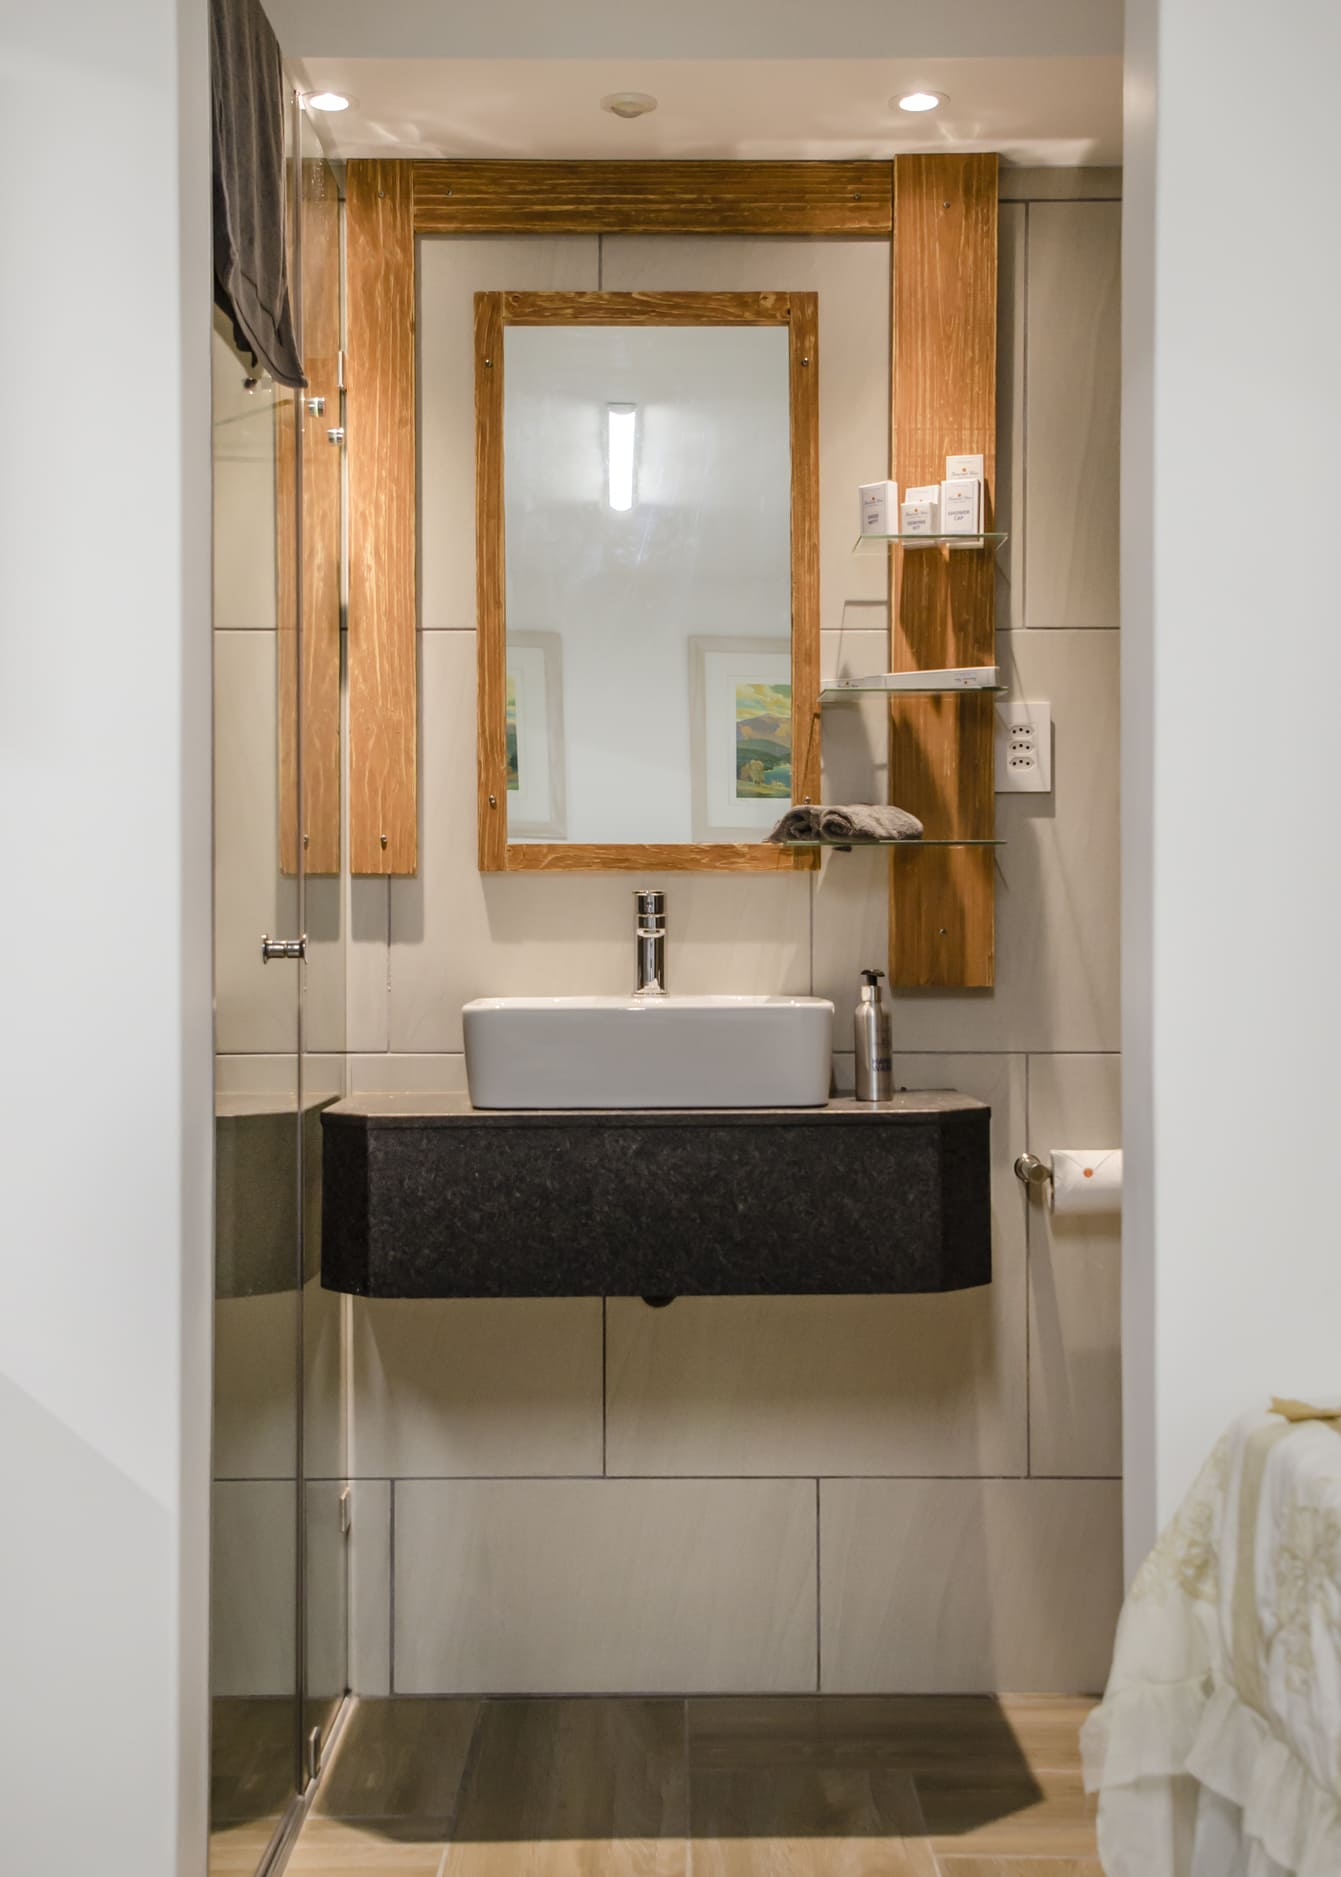 Photo of the bathroom in the Take 5 room showing the sink and main mirror.